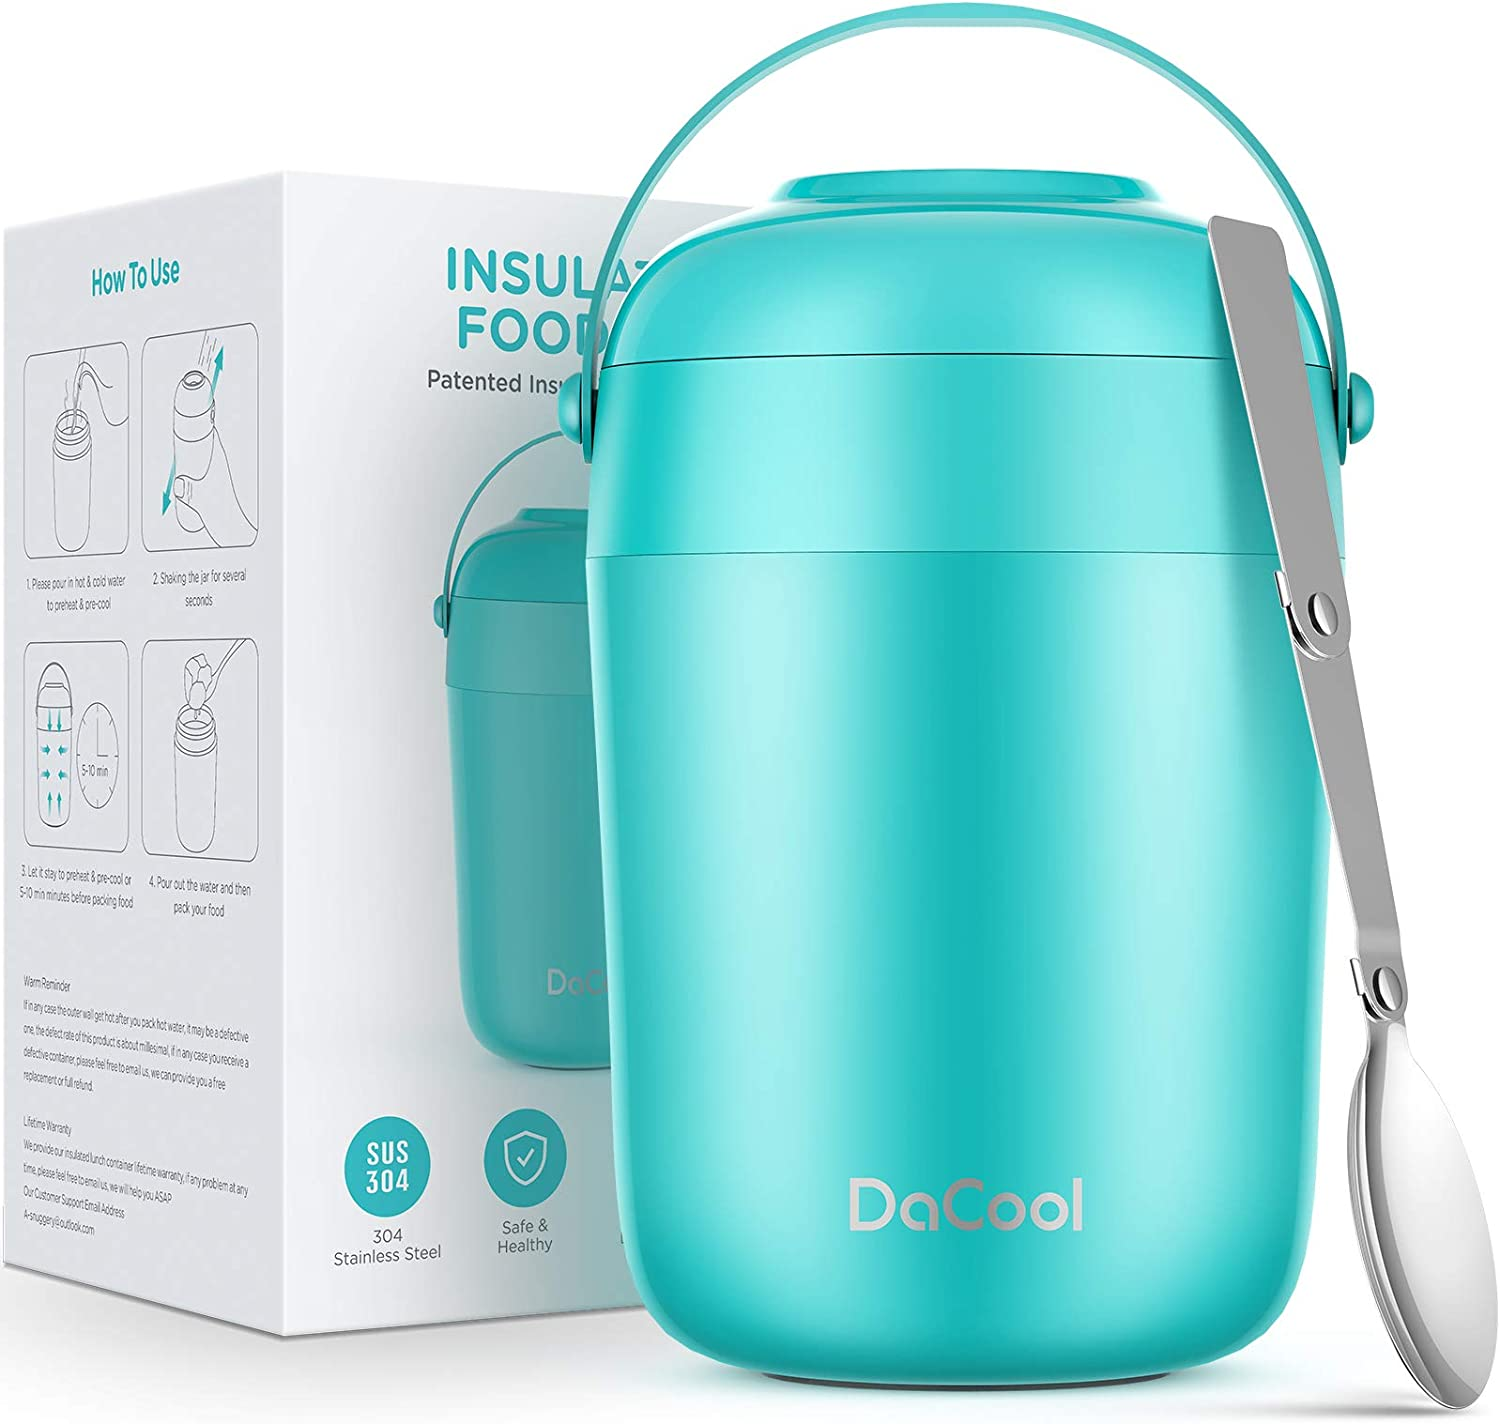 DaCool Food Thermos for Hot Cold Food 16oz - Insulated Food Jar Kids Soup Thermos with Spoon Handle Vacuum Stainless Steel Girls Boys Lunch Box Leakproof for School Office Picnic Camping, Cyan Blue